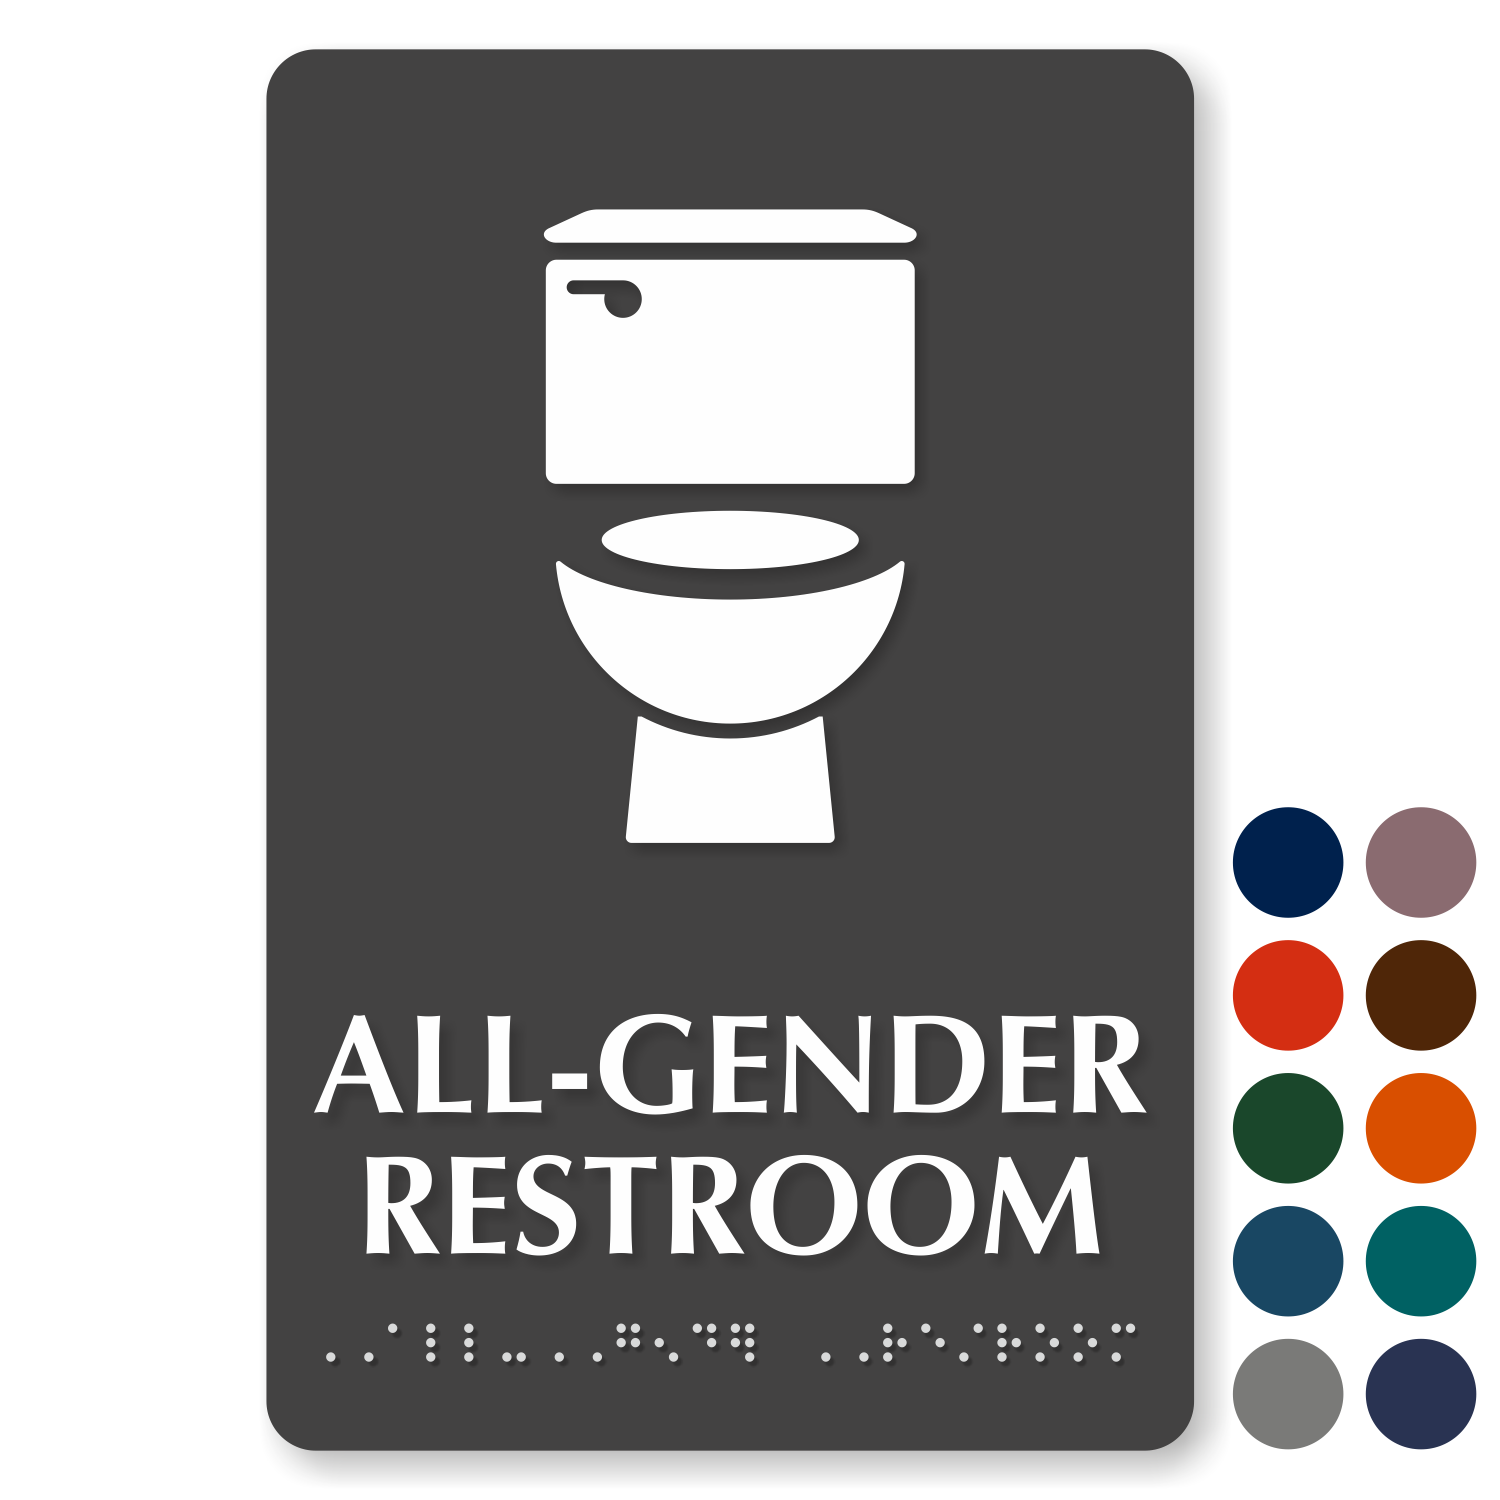 All Gender Restroom Signs